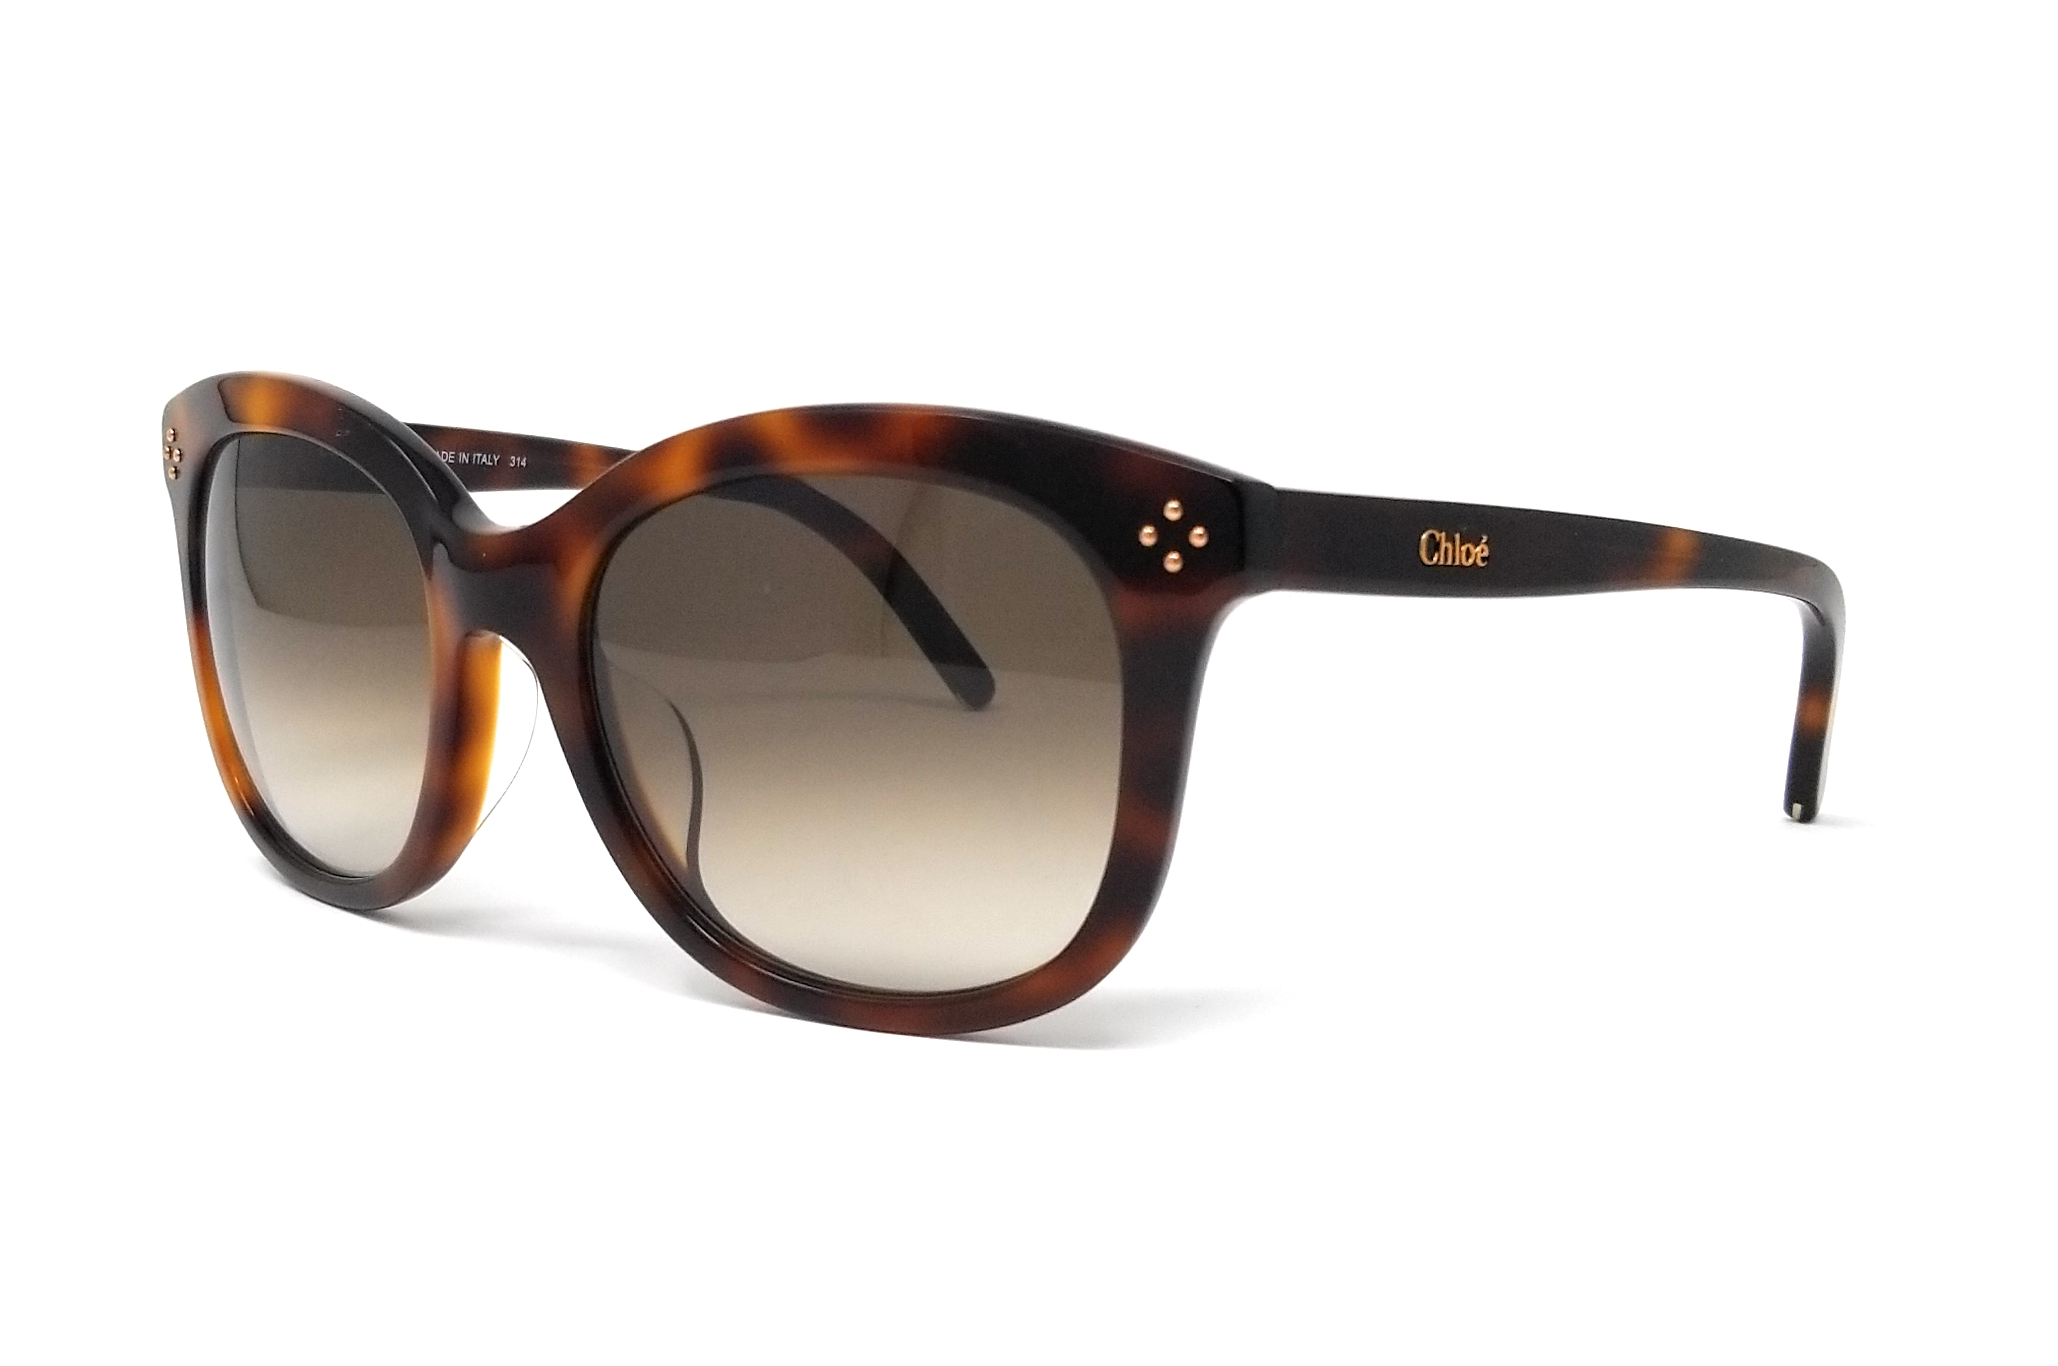 69efaa41b71 Details about CHLOE Sunglasses CE669SA 219 Tortoise Cat Eye Women s  56x20x140